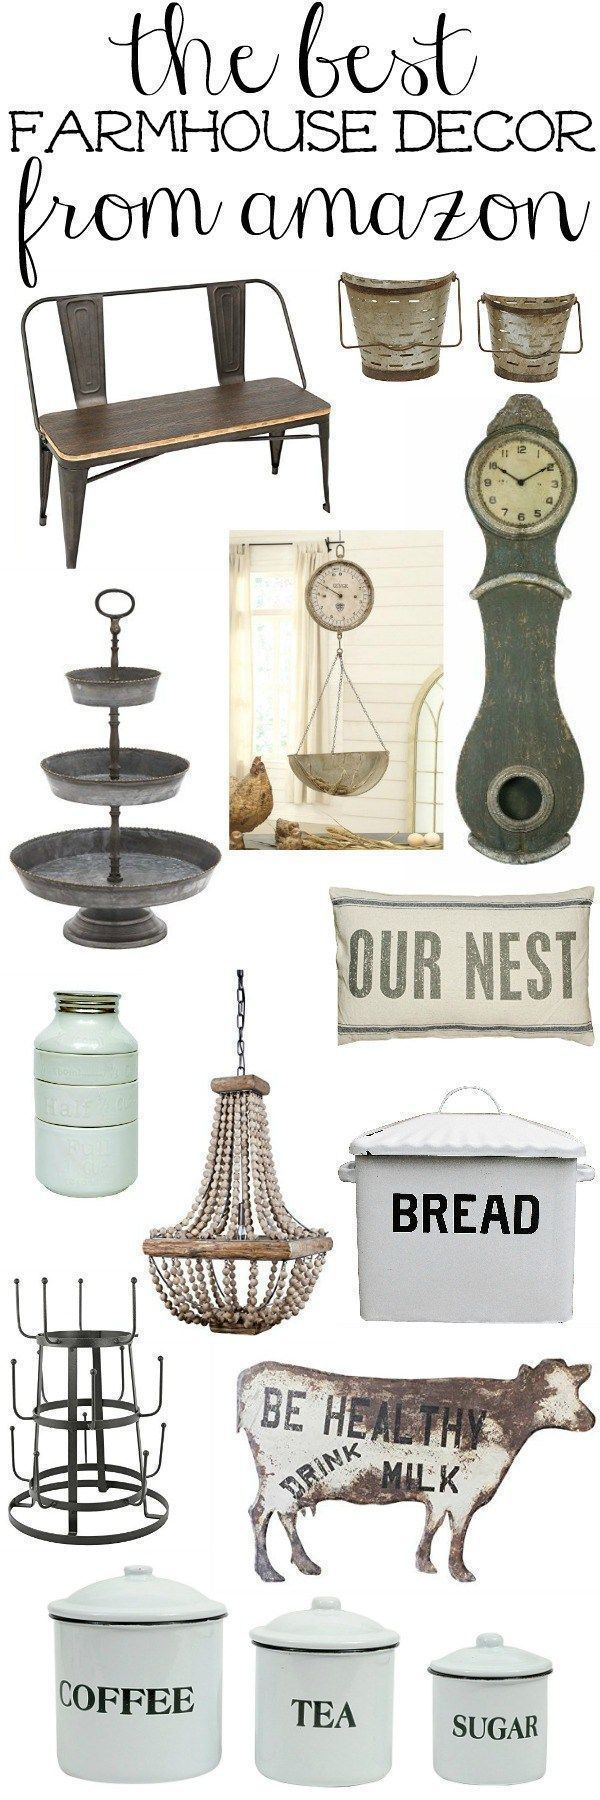 best 25 country farmhouse decor ideas on pinterest farm kitchen awesome awesome awesome the best farmhouse decor from amazon by www cool homedeco